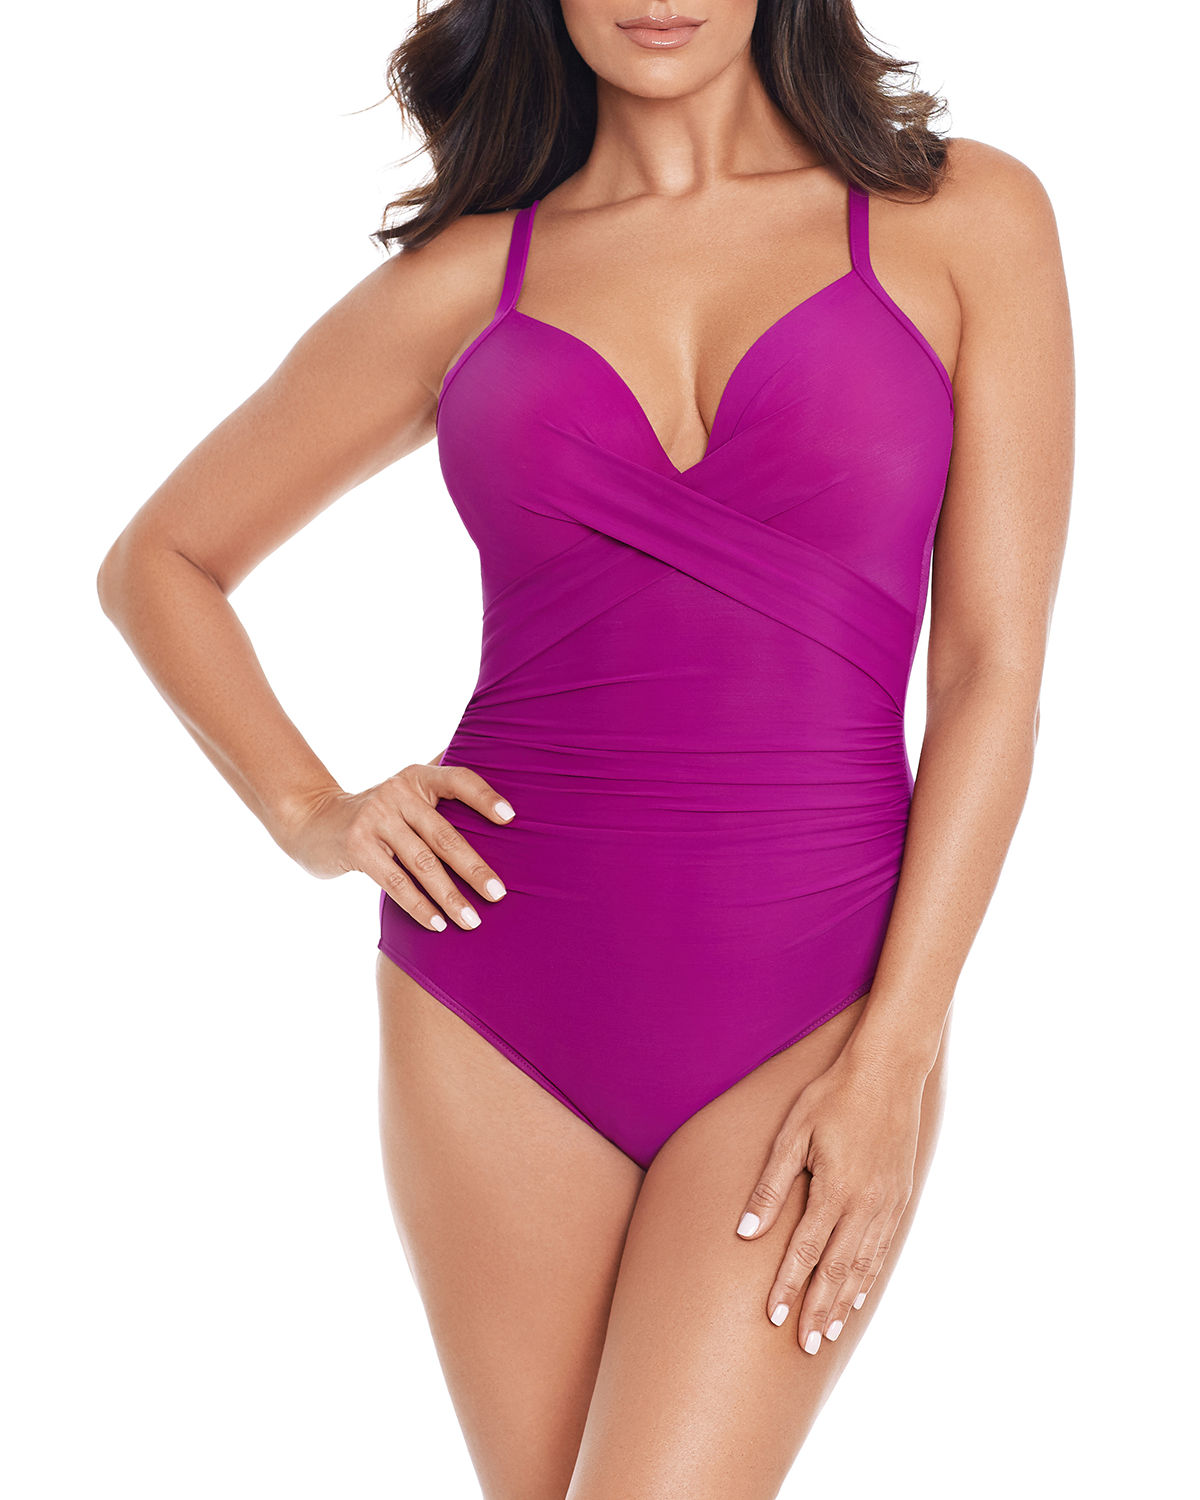 Miraclesuit One-pieces ROCK SOLID CAPTIVATE ONE-PIECE SWIMSUIT